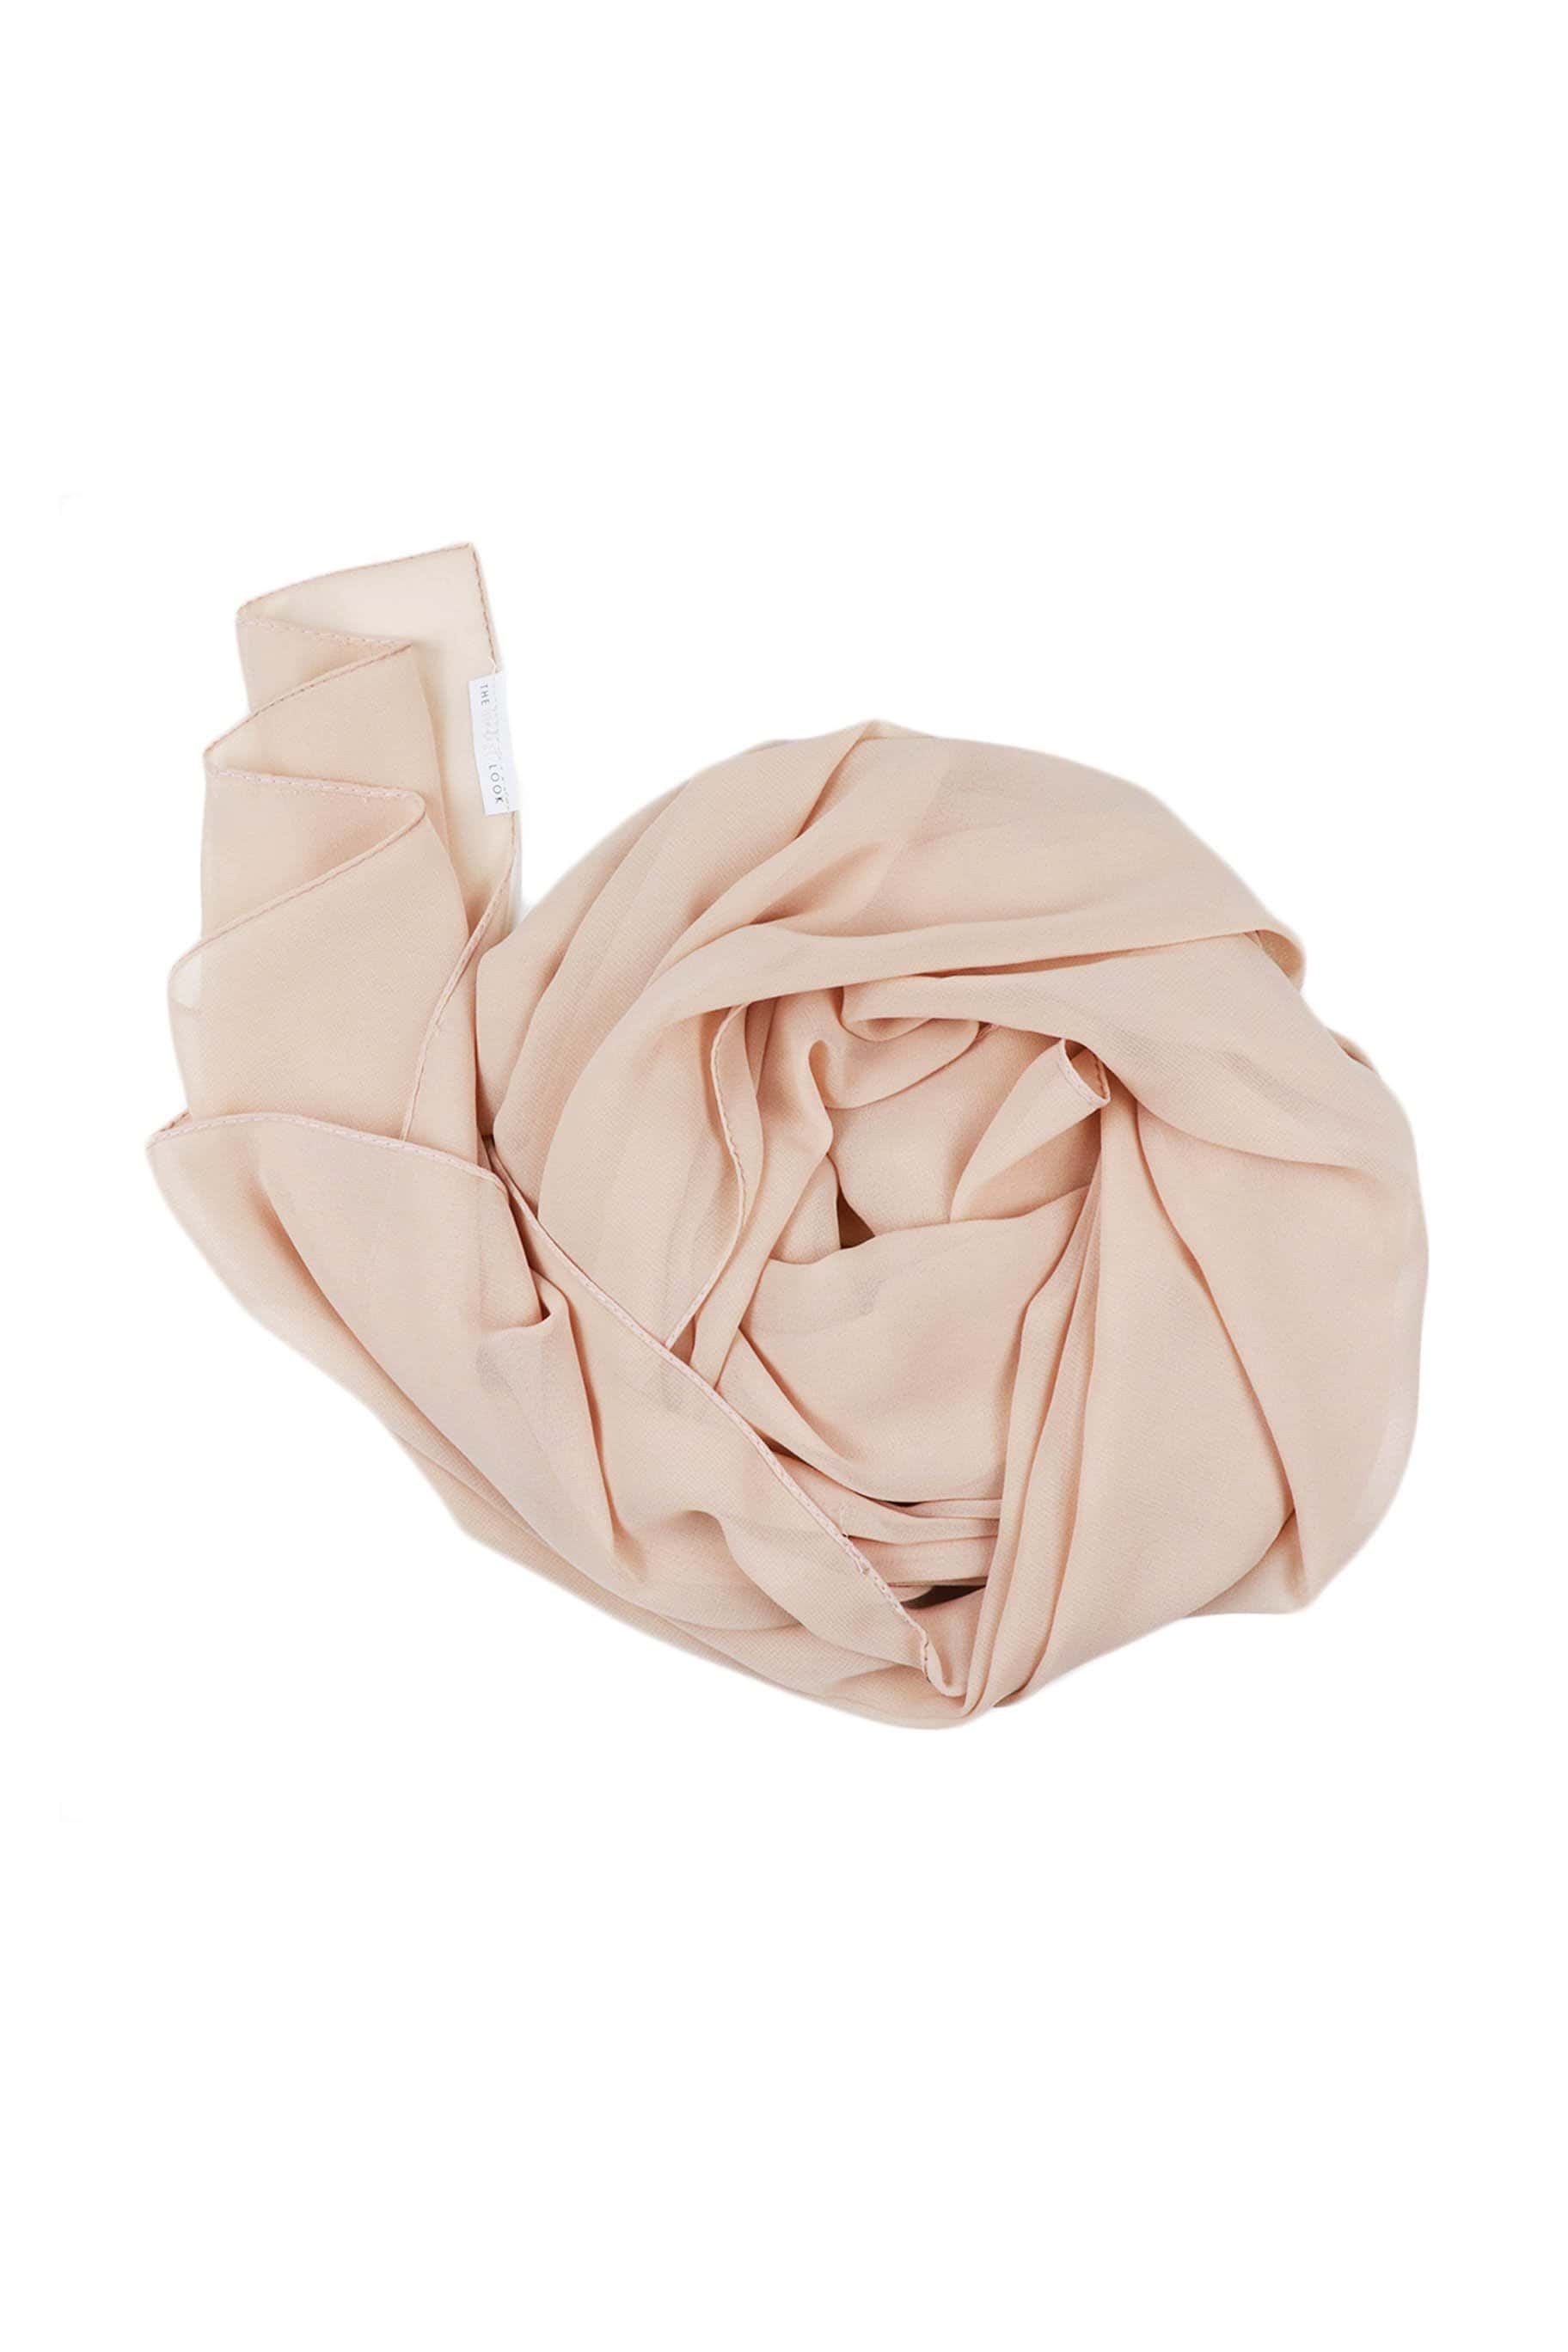 Buttercream Nude Chiffon Hijab - Chiffon Hijab - The Modest Look